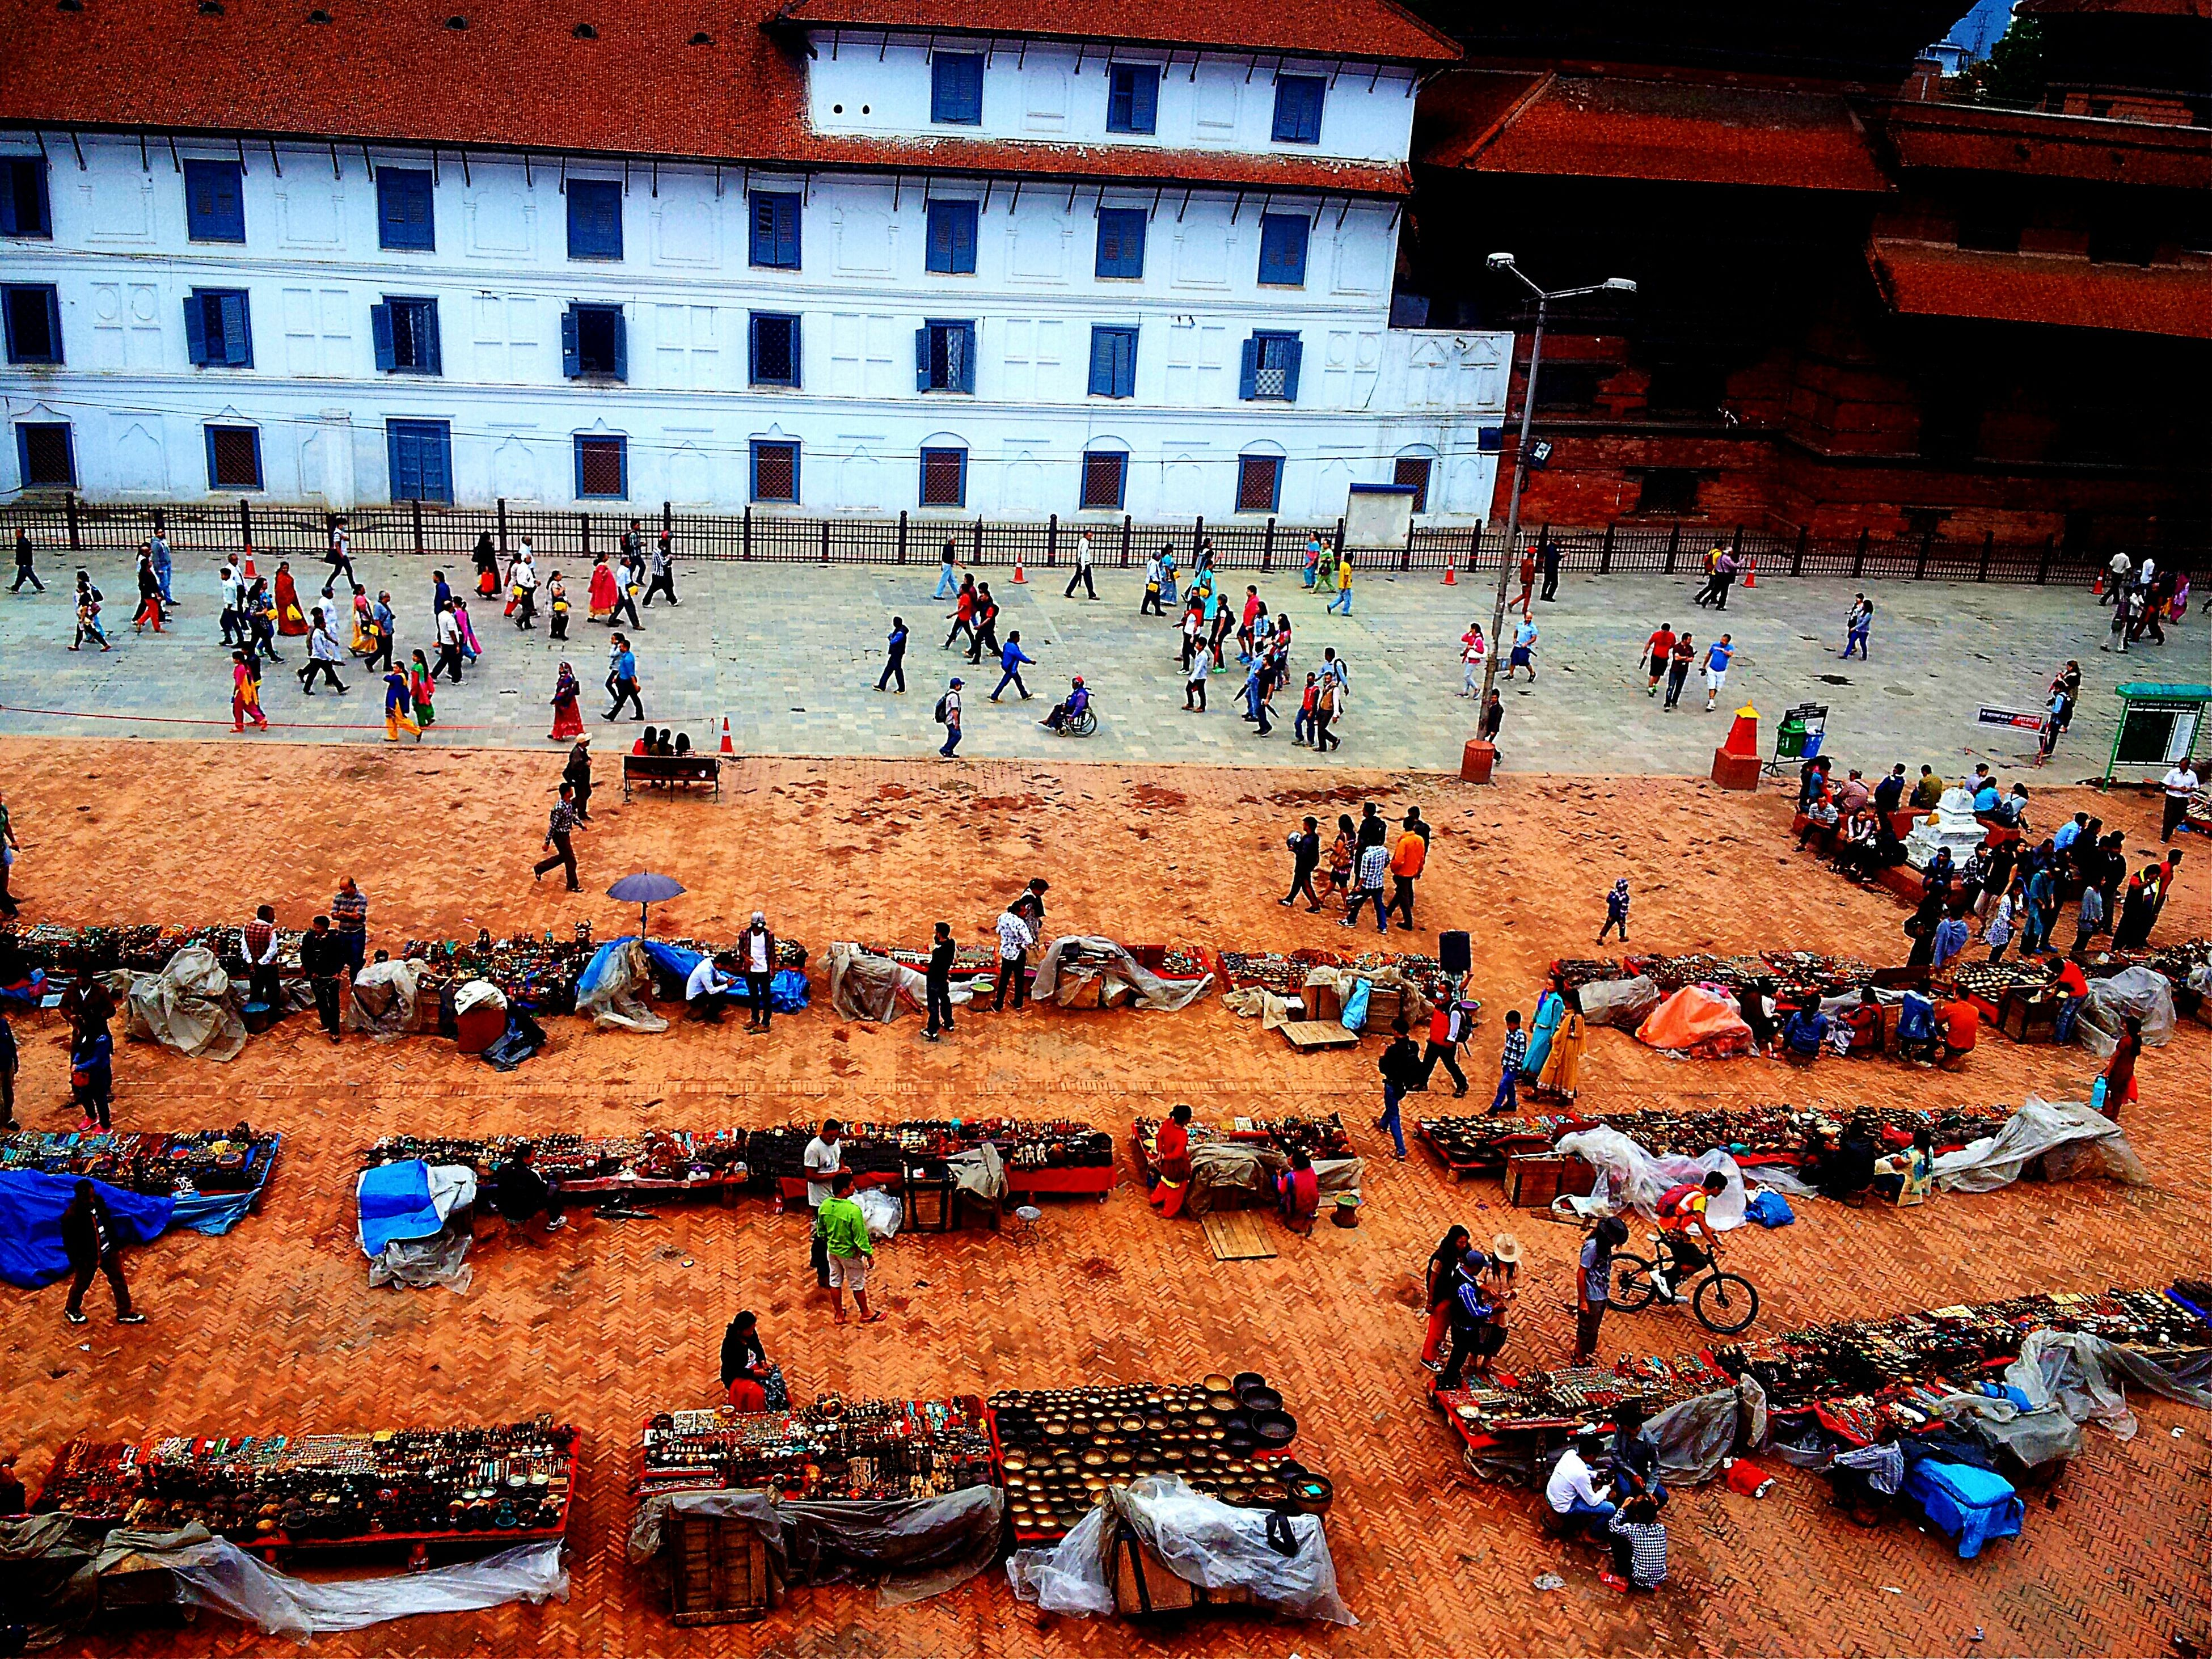 The Street Photographer - 2015 EyeEm Awards NepalB4Quake 1DayB4Quake Now all you will find is rubble and a remant of its previous glory